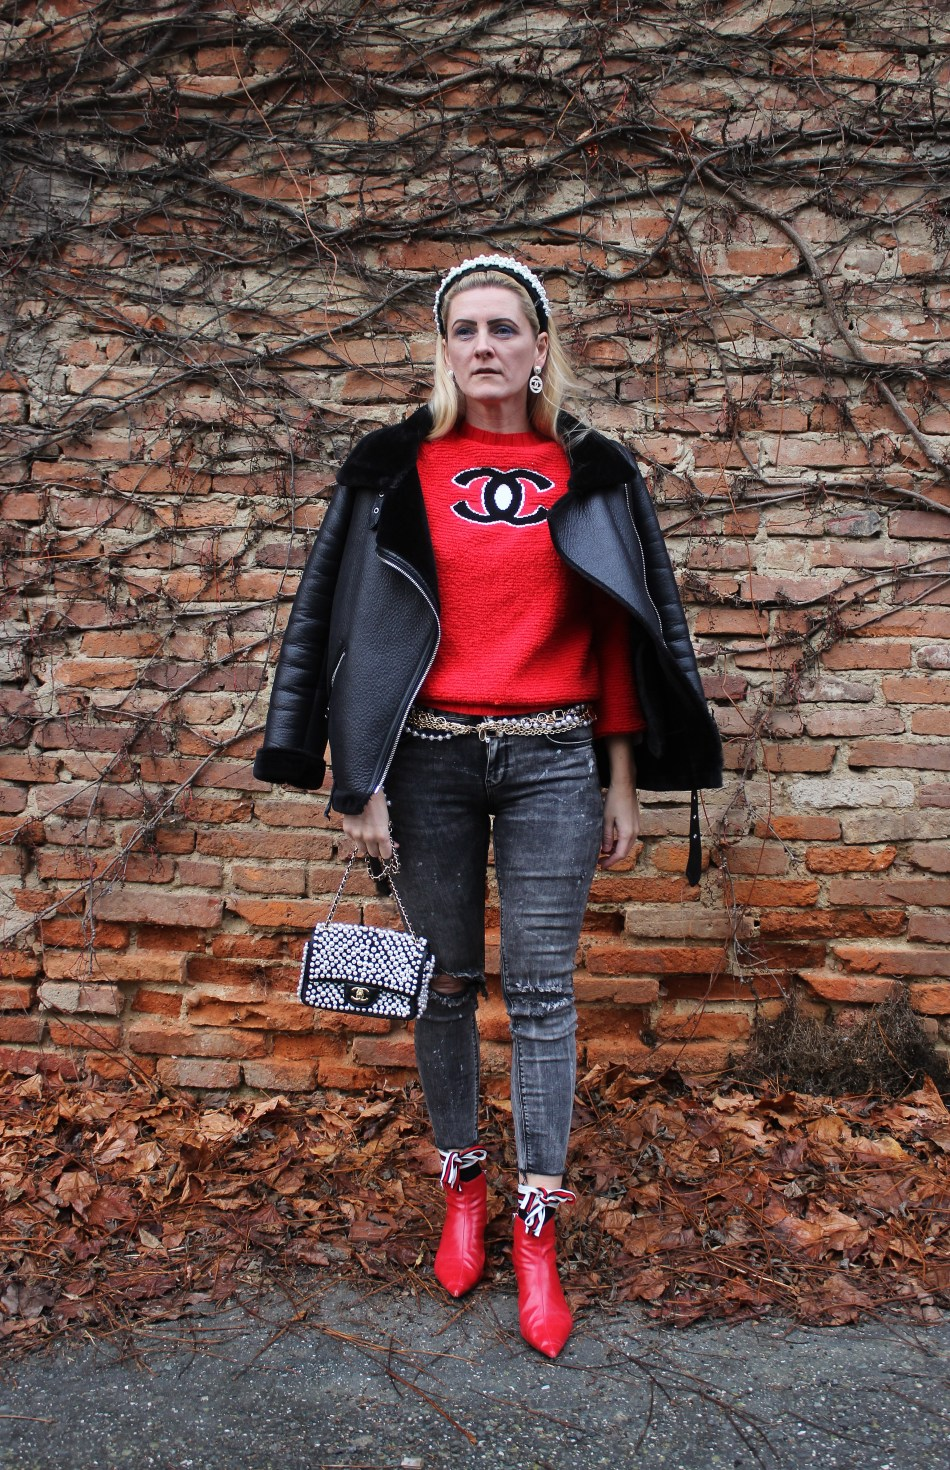 Chanel-Sweater-Pearls-Chainbelt-Fashionsocks-Denim-carrieslifestyle-Tamara-Prutsch